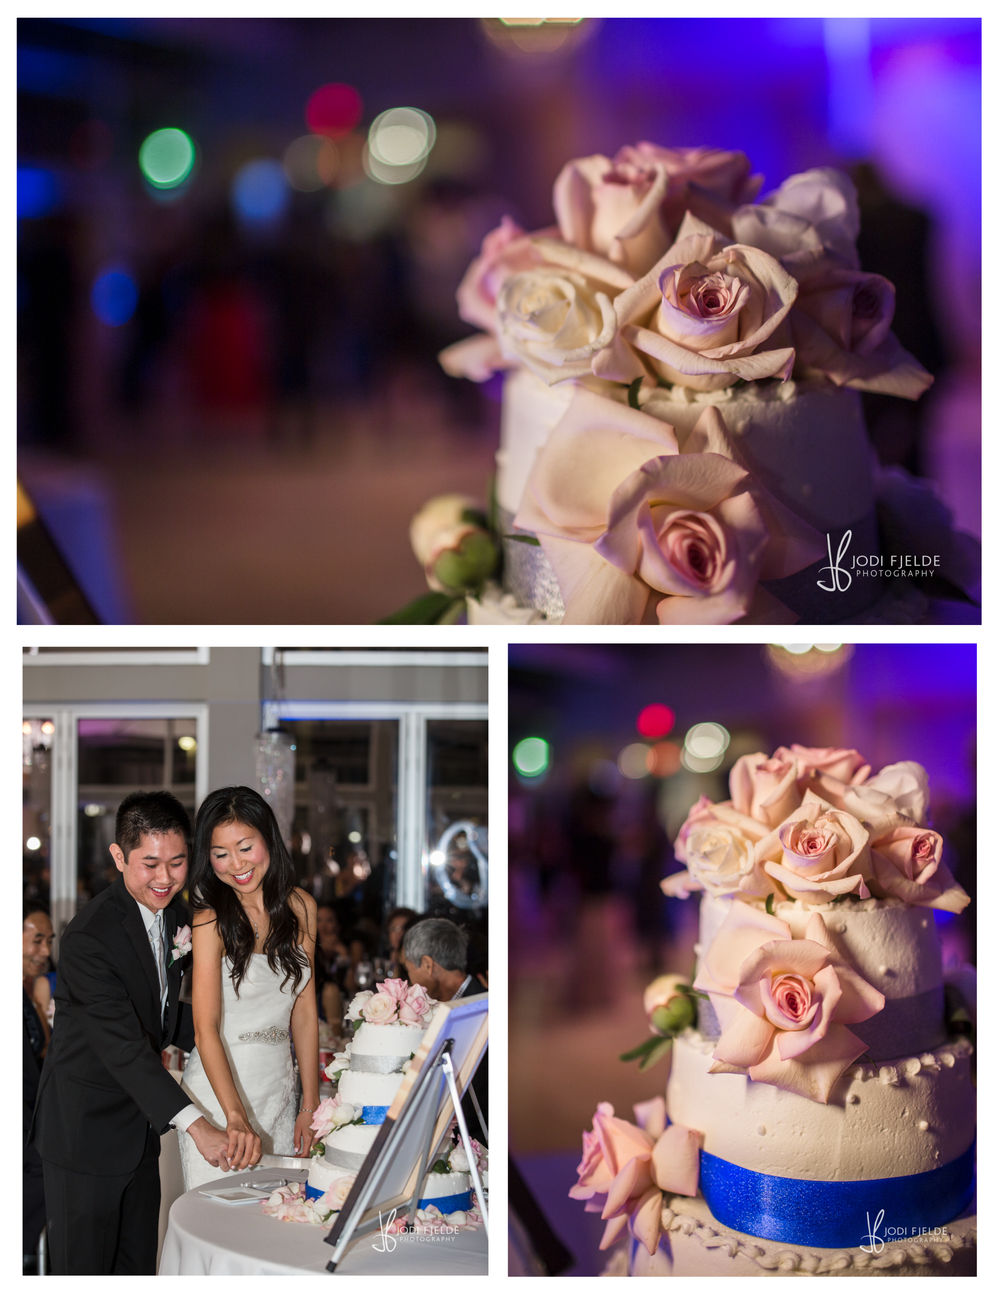 Lake_Pavilion_Wedding_West_Palm_Beach_Jodi_Fjelde_Photography_Betty_Alex_Sociaety_Of_Four _Arts_26.jpg